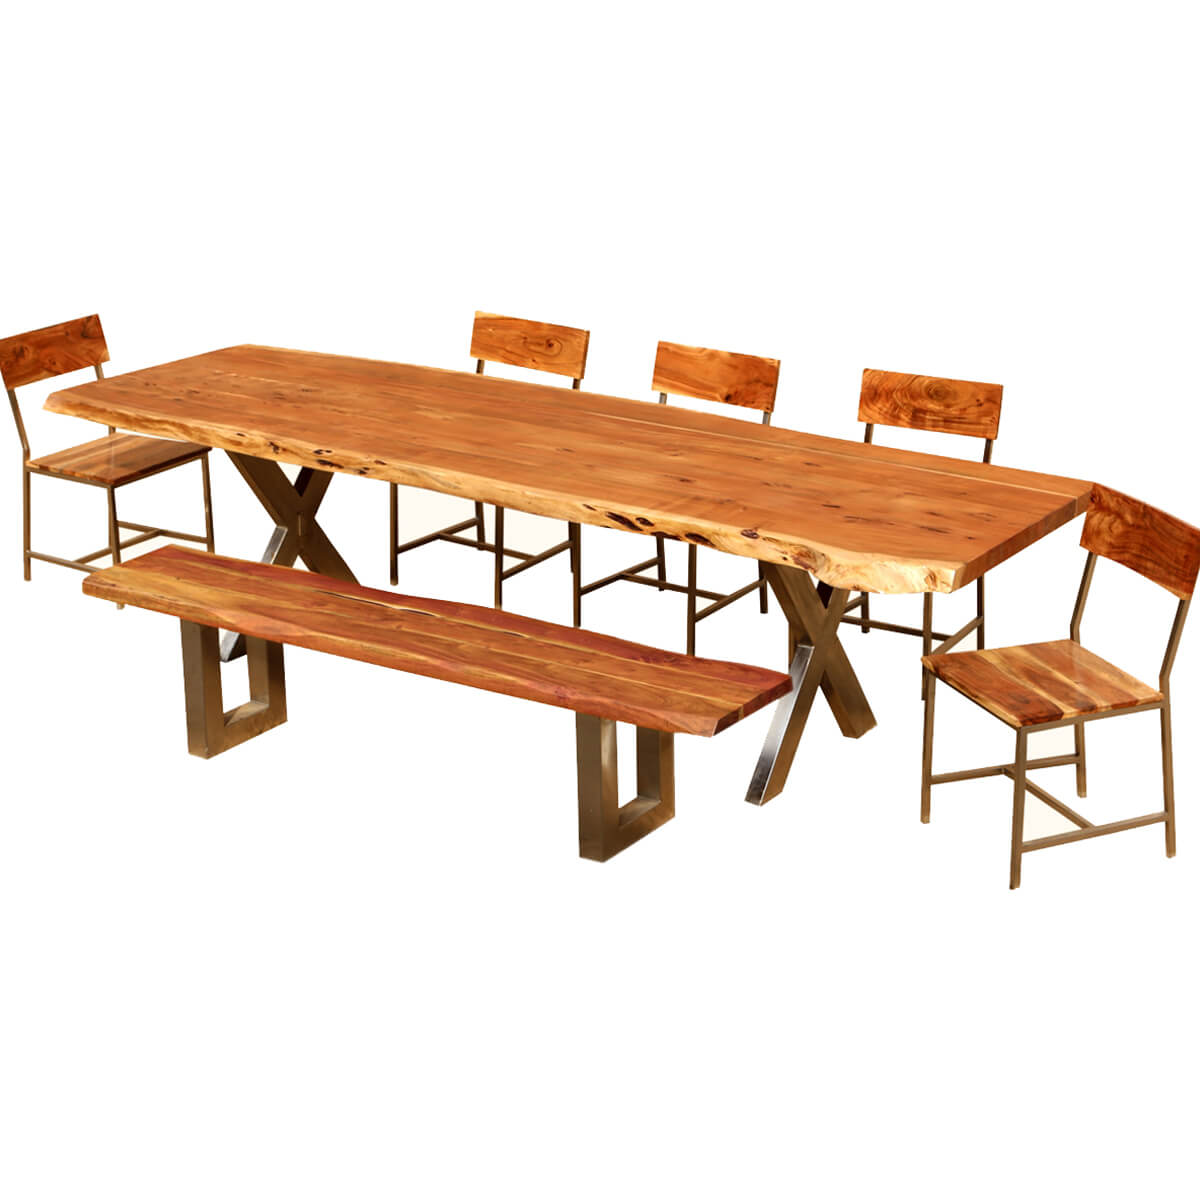 Live Edge Acacia Wood Amp Iron 106 Quot Dining Table W 5 Chairs